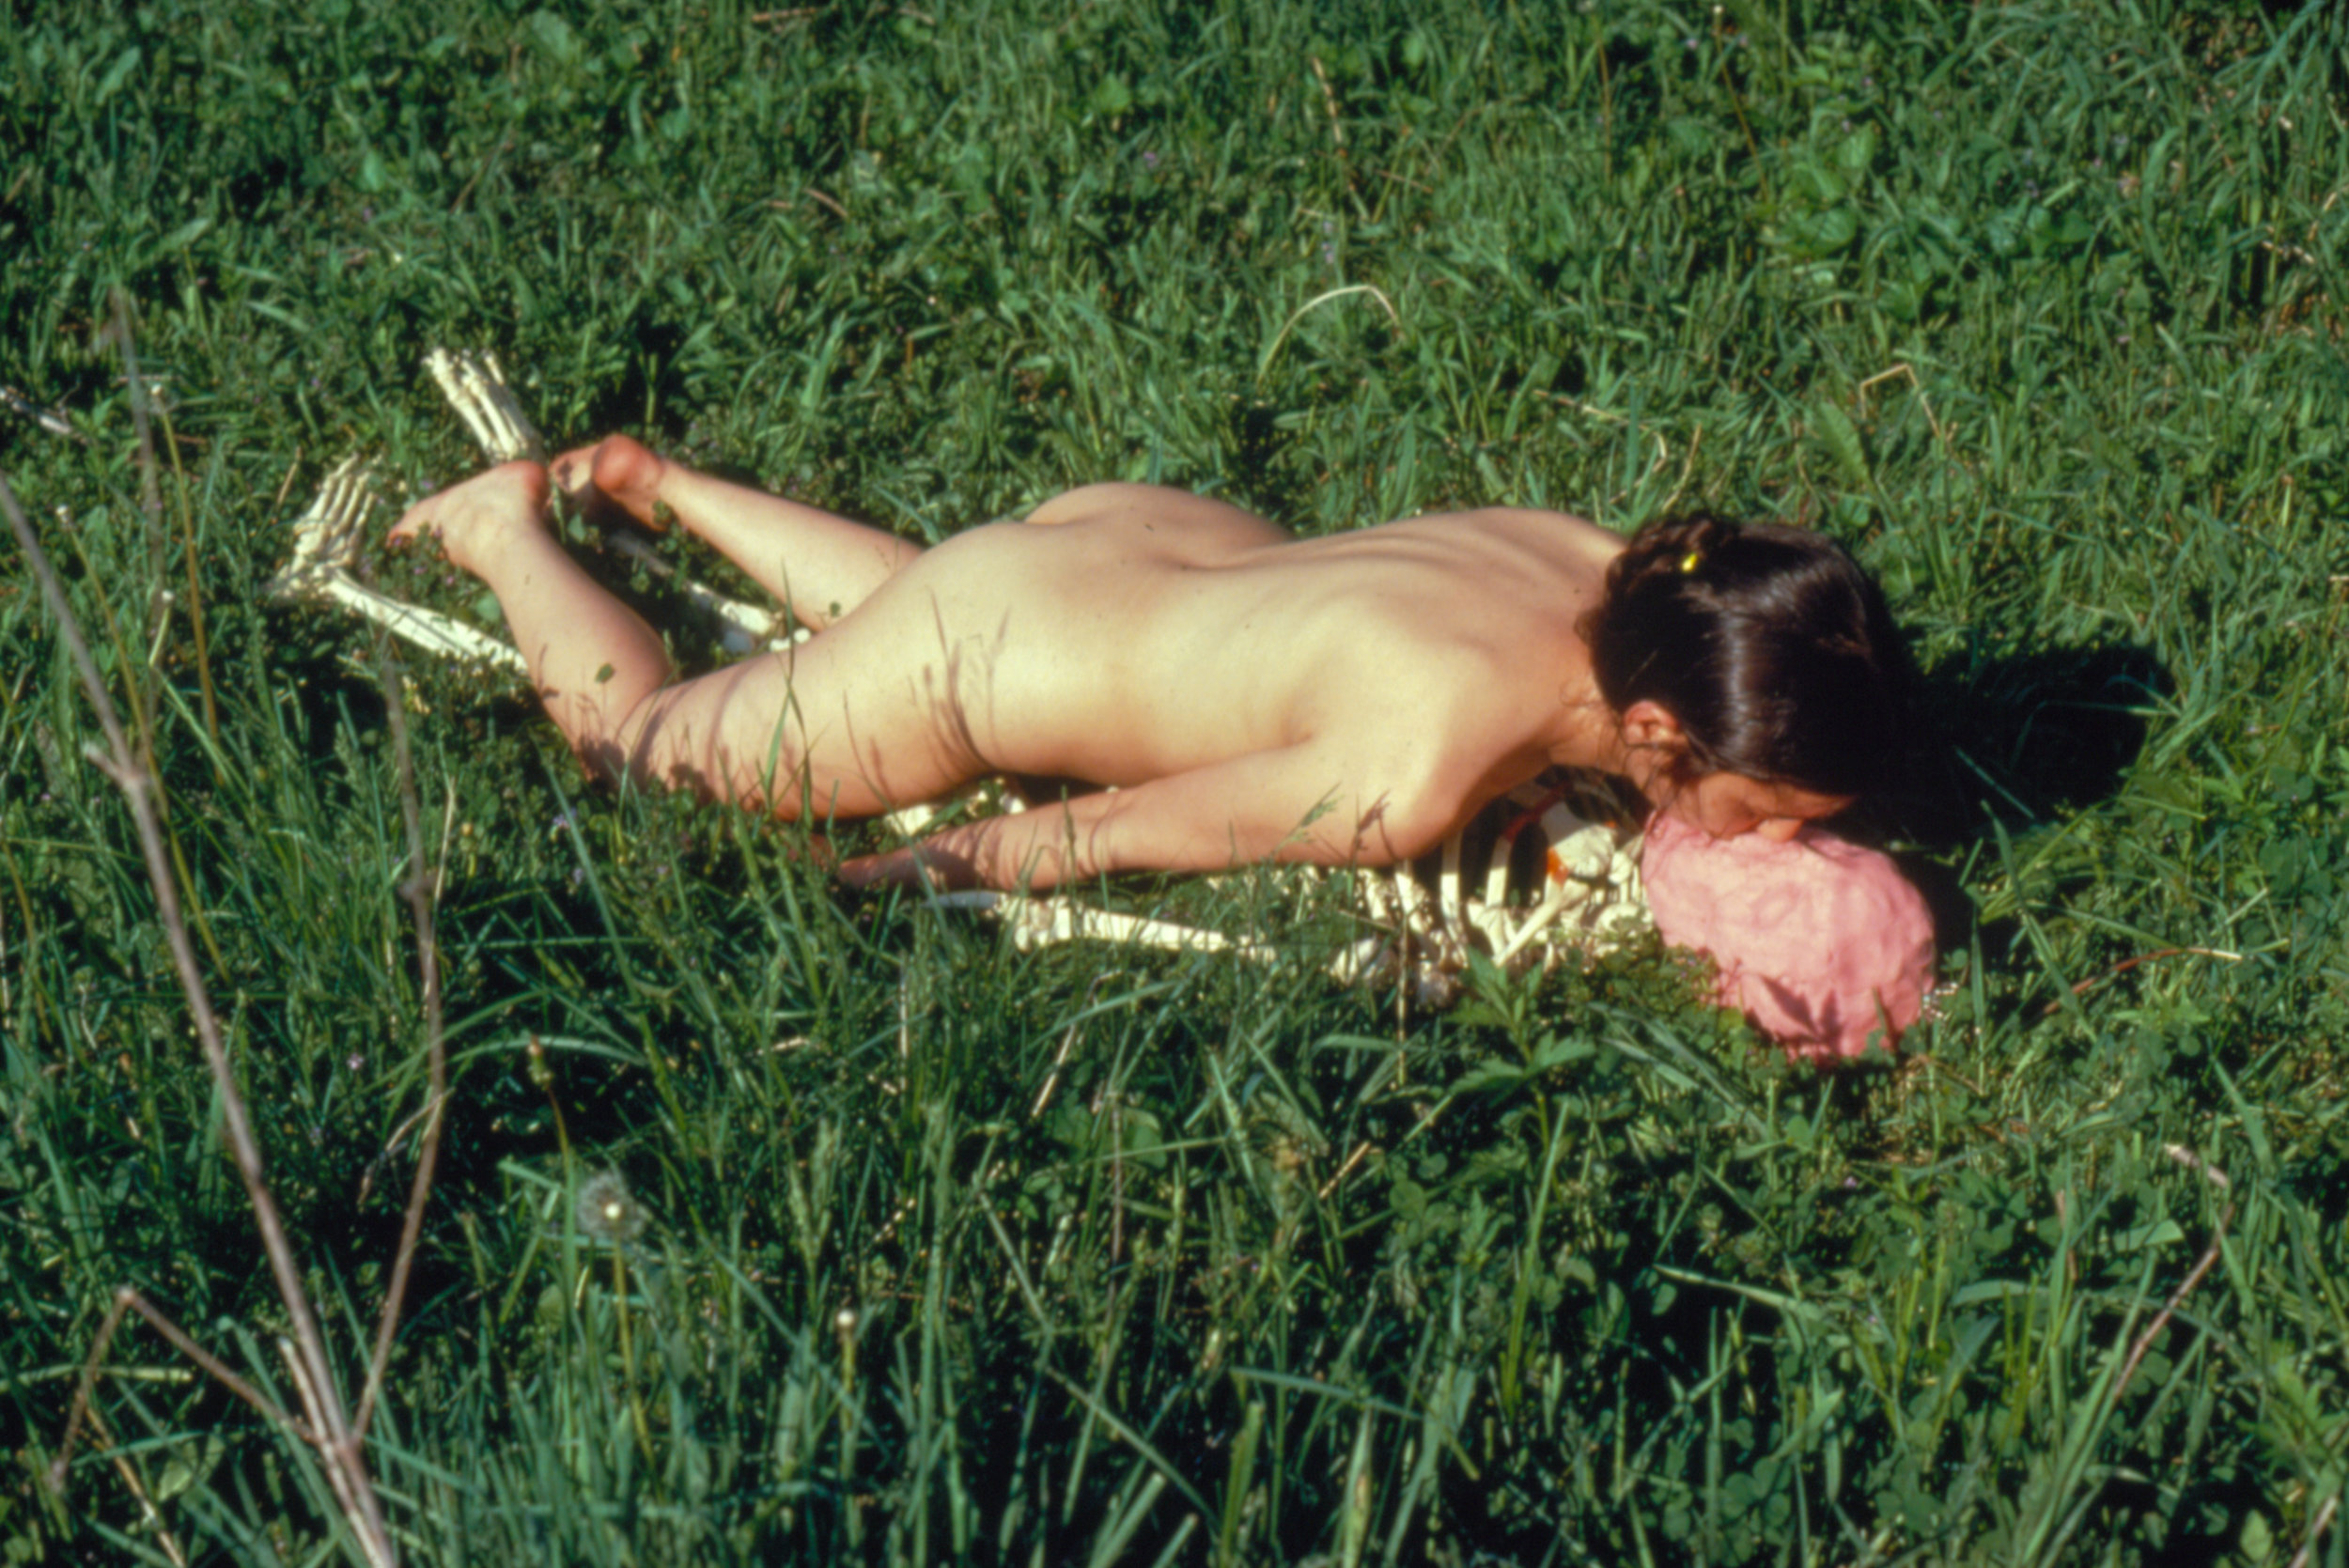 On Giving Life , 1975 Photograph © The Estate of Ana Mendieta Collection, LLC,Courtesy Galerie Lelong, New York